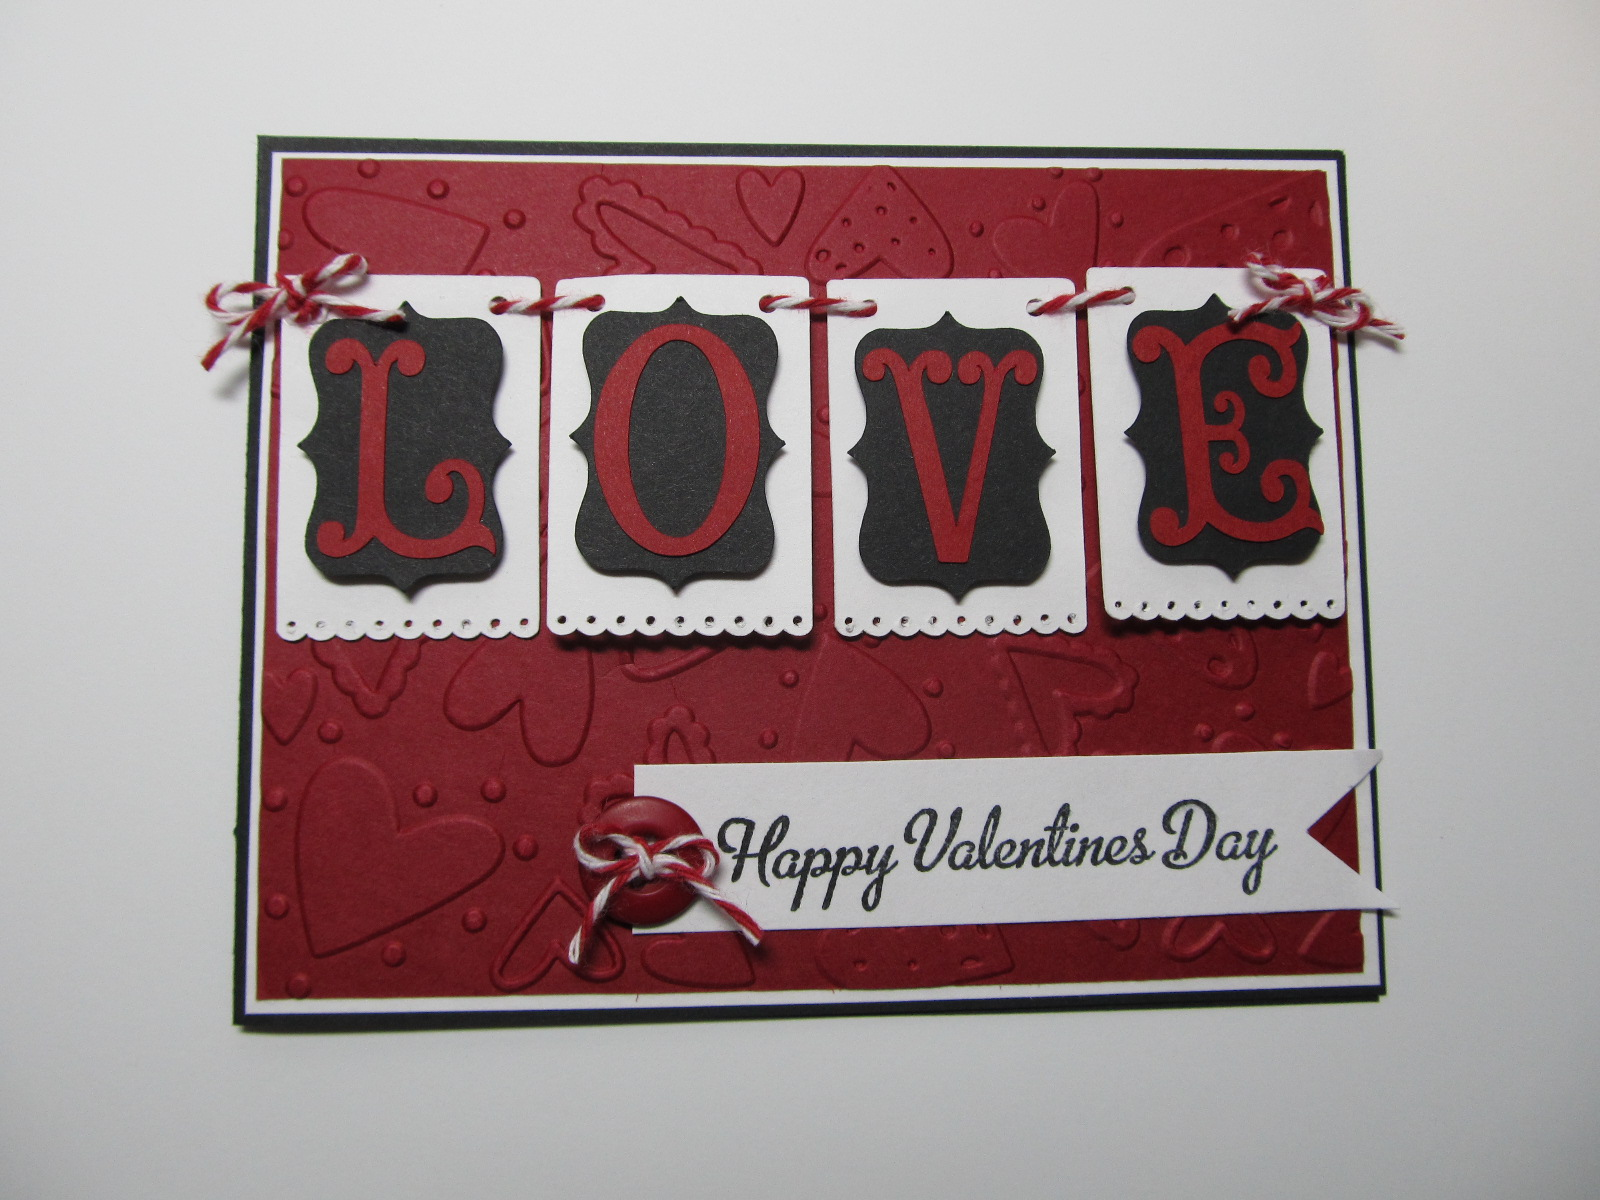 Creative Cricut Designs  More Happy Valentines Day Card